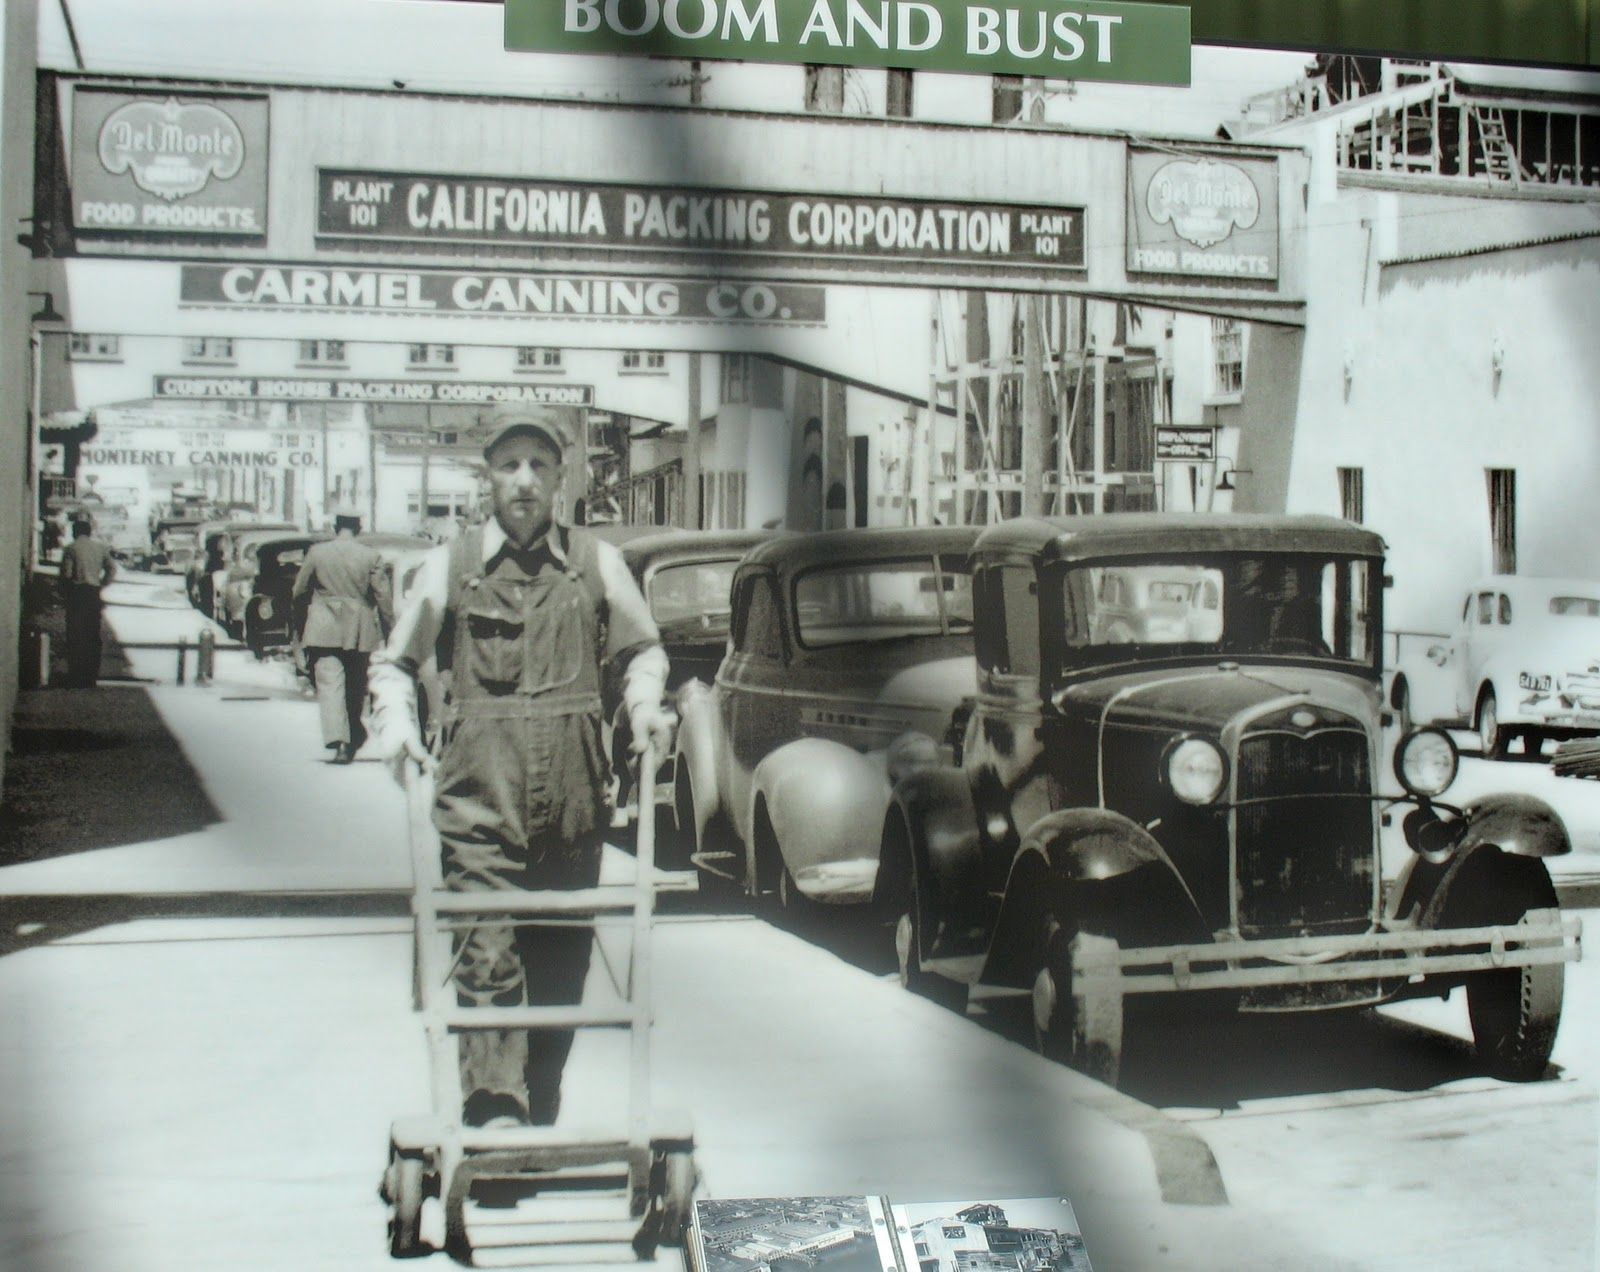 best images about cannery row props costumes set design on cannery row monterey 1930s interesting contrast between this and the current street shot